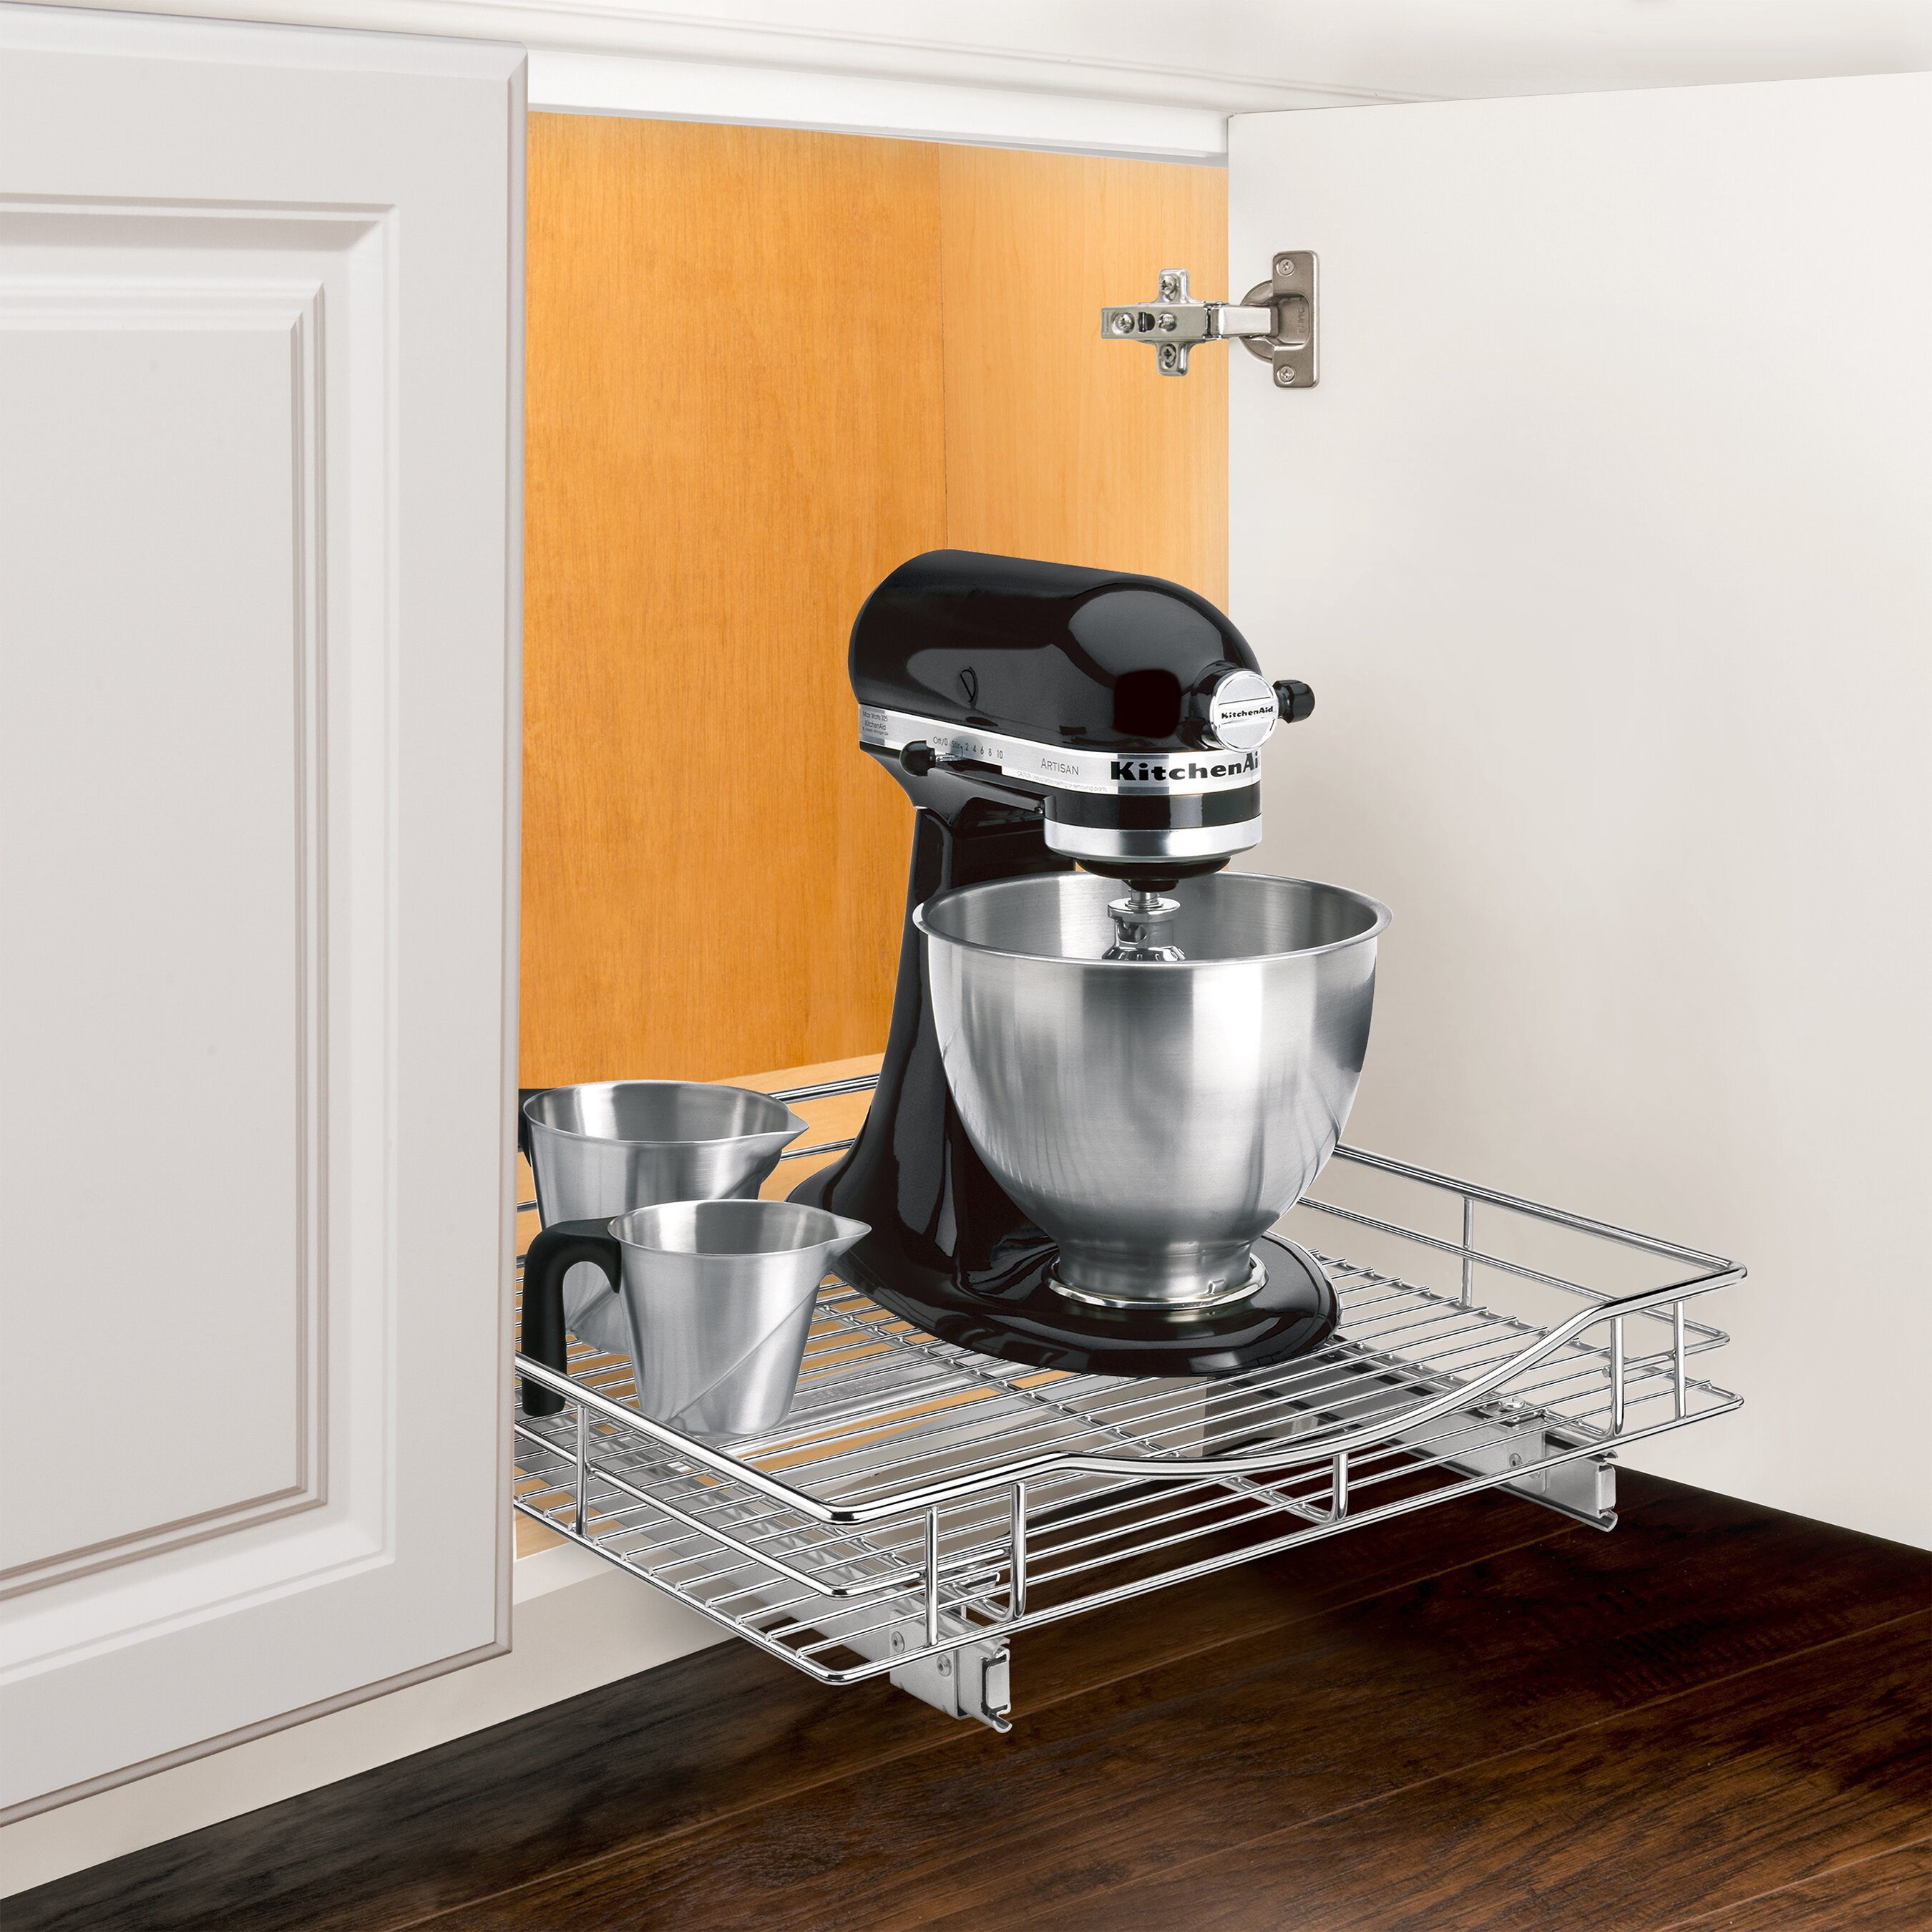 Under Cabinet Shelving Kitchen Lynk Roll Out Cabinet Organizer Pull Out Drawer Under Cabinet